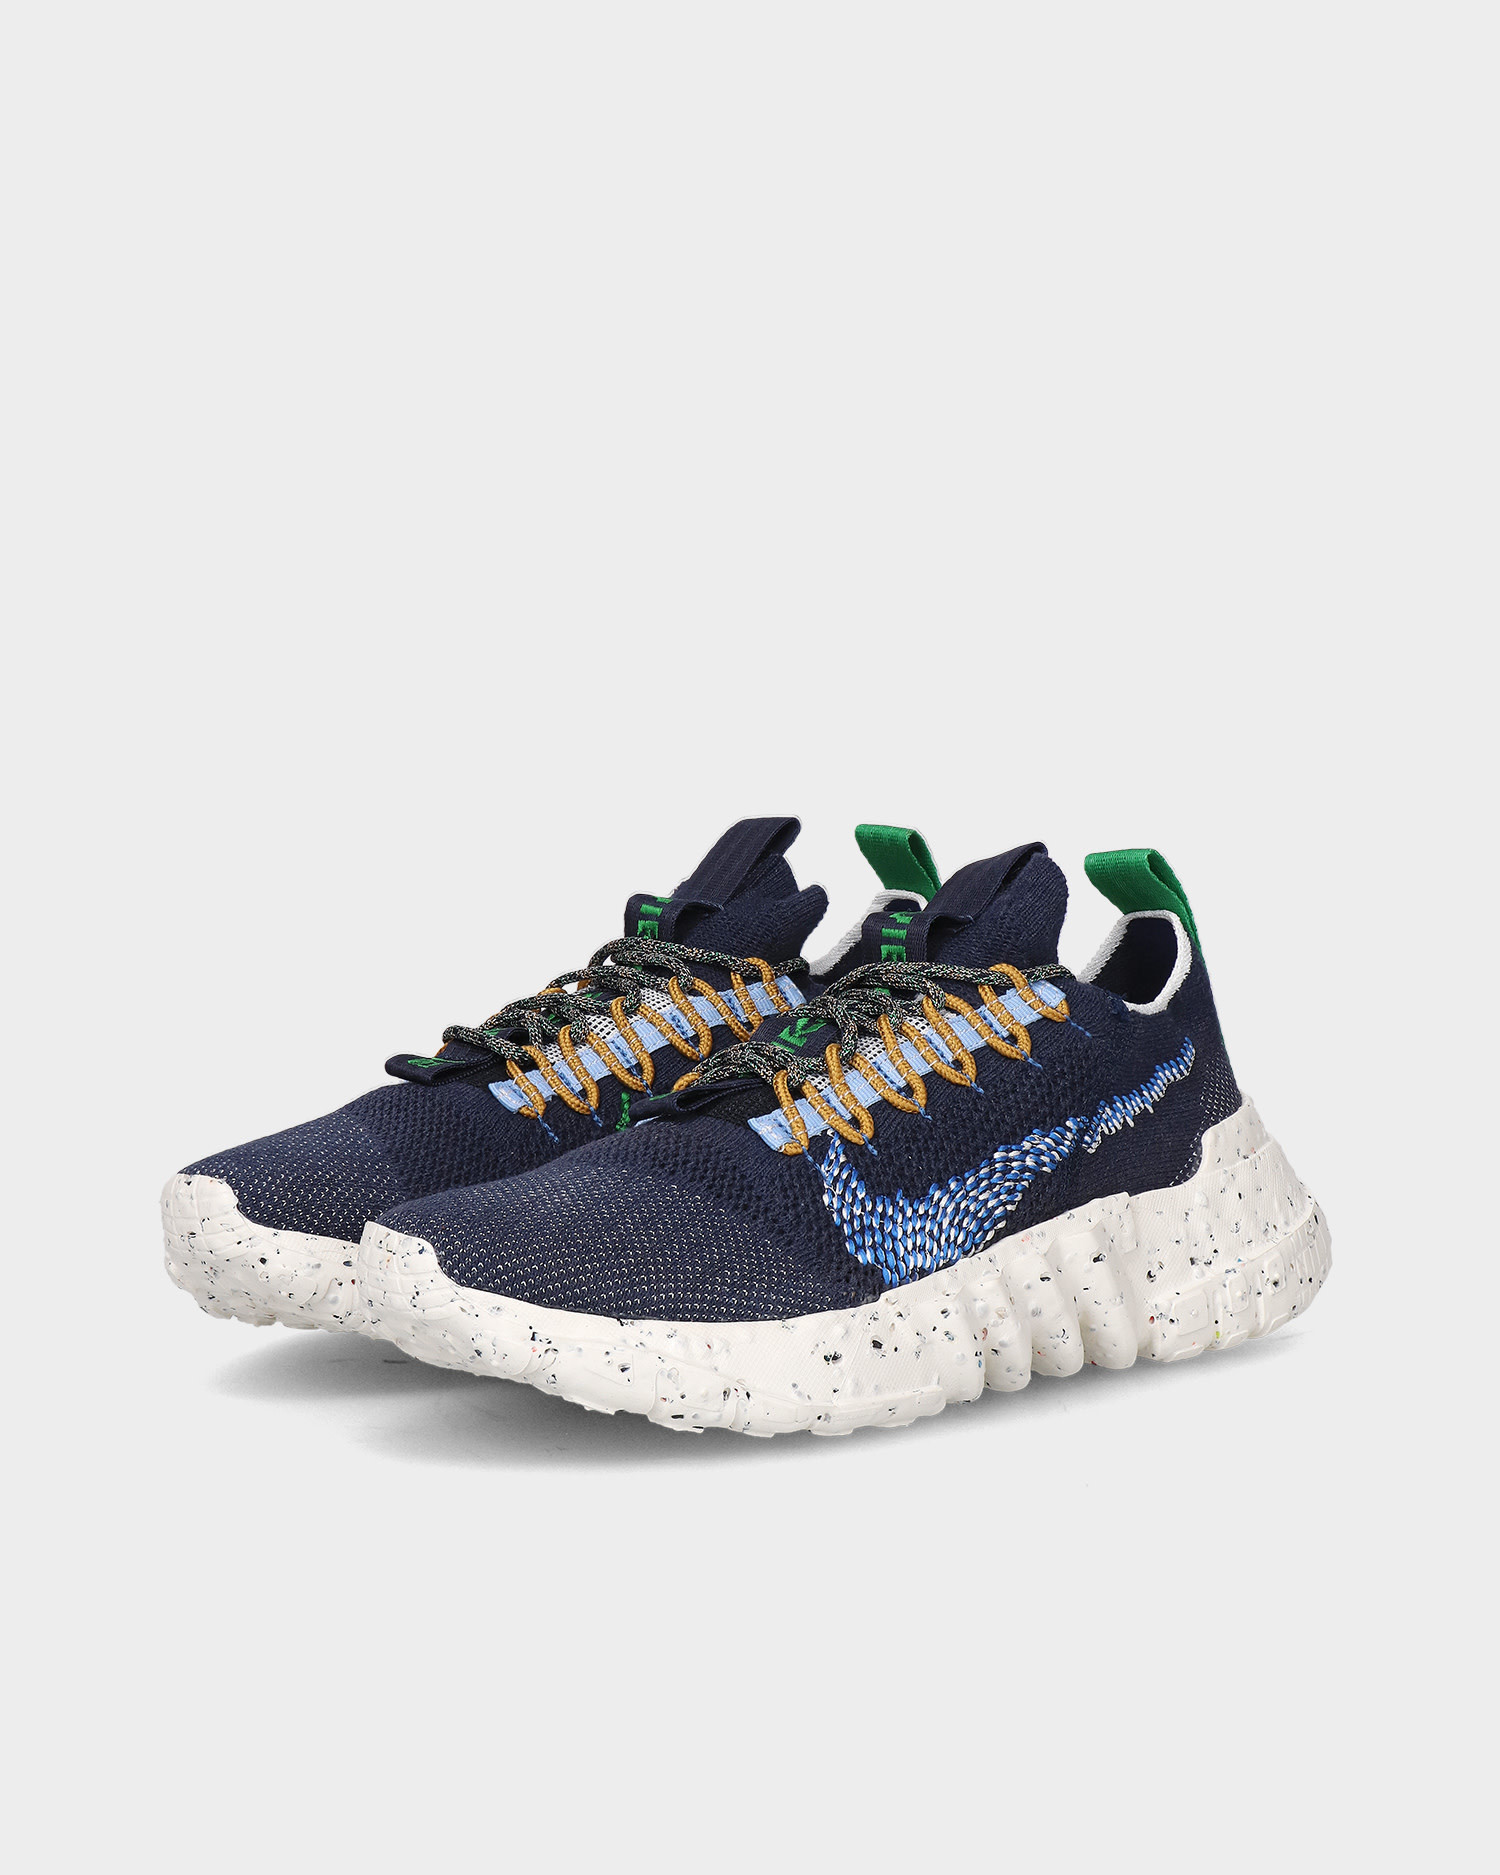 Nike space hippie 01 Obsidian/signal blue-psychic blue-white